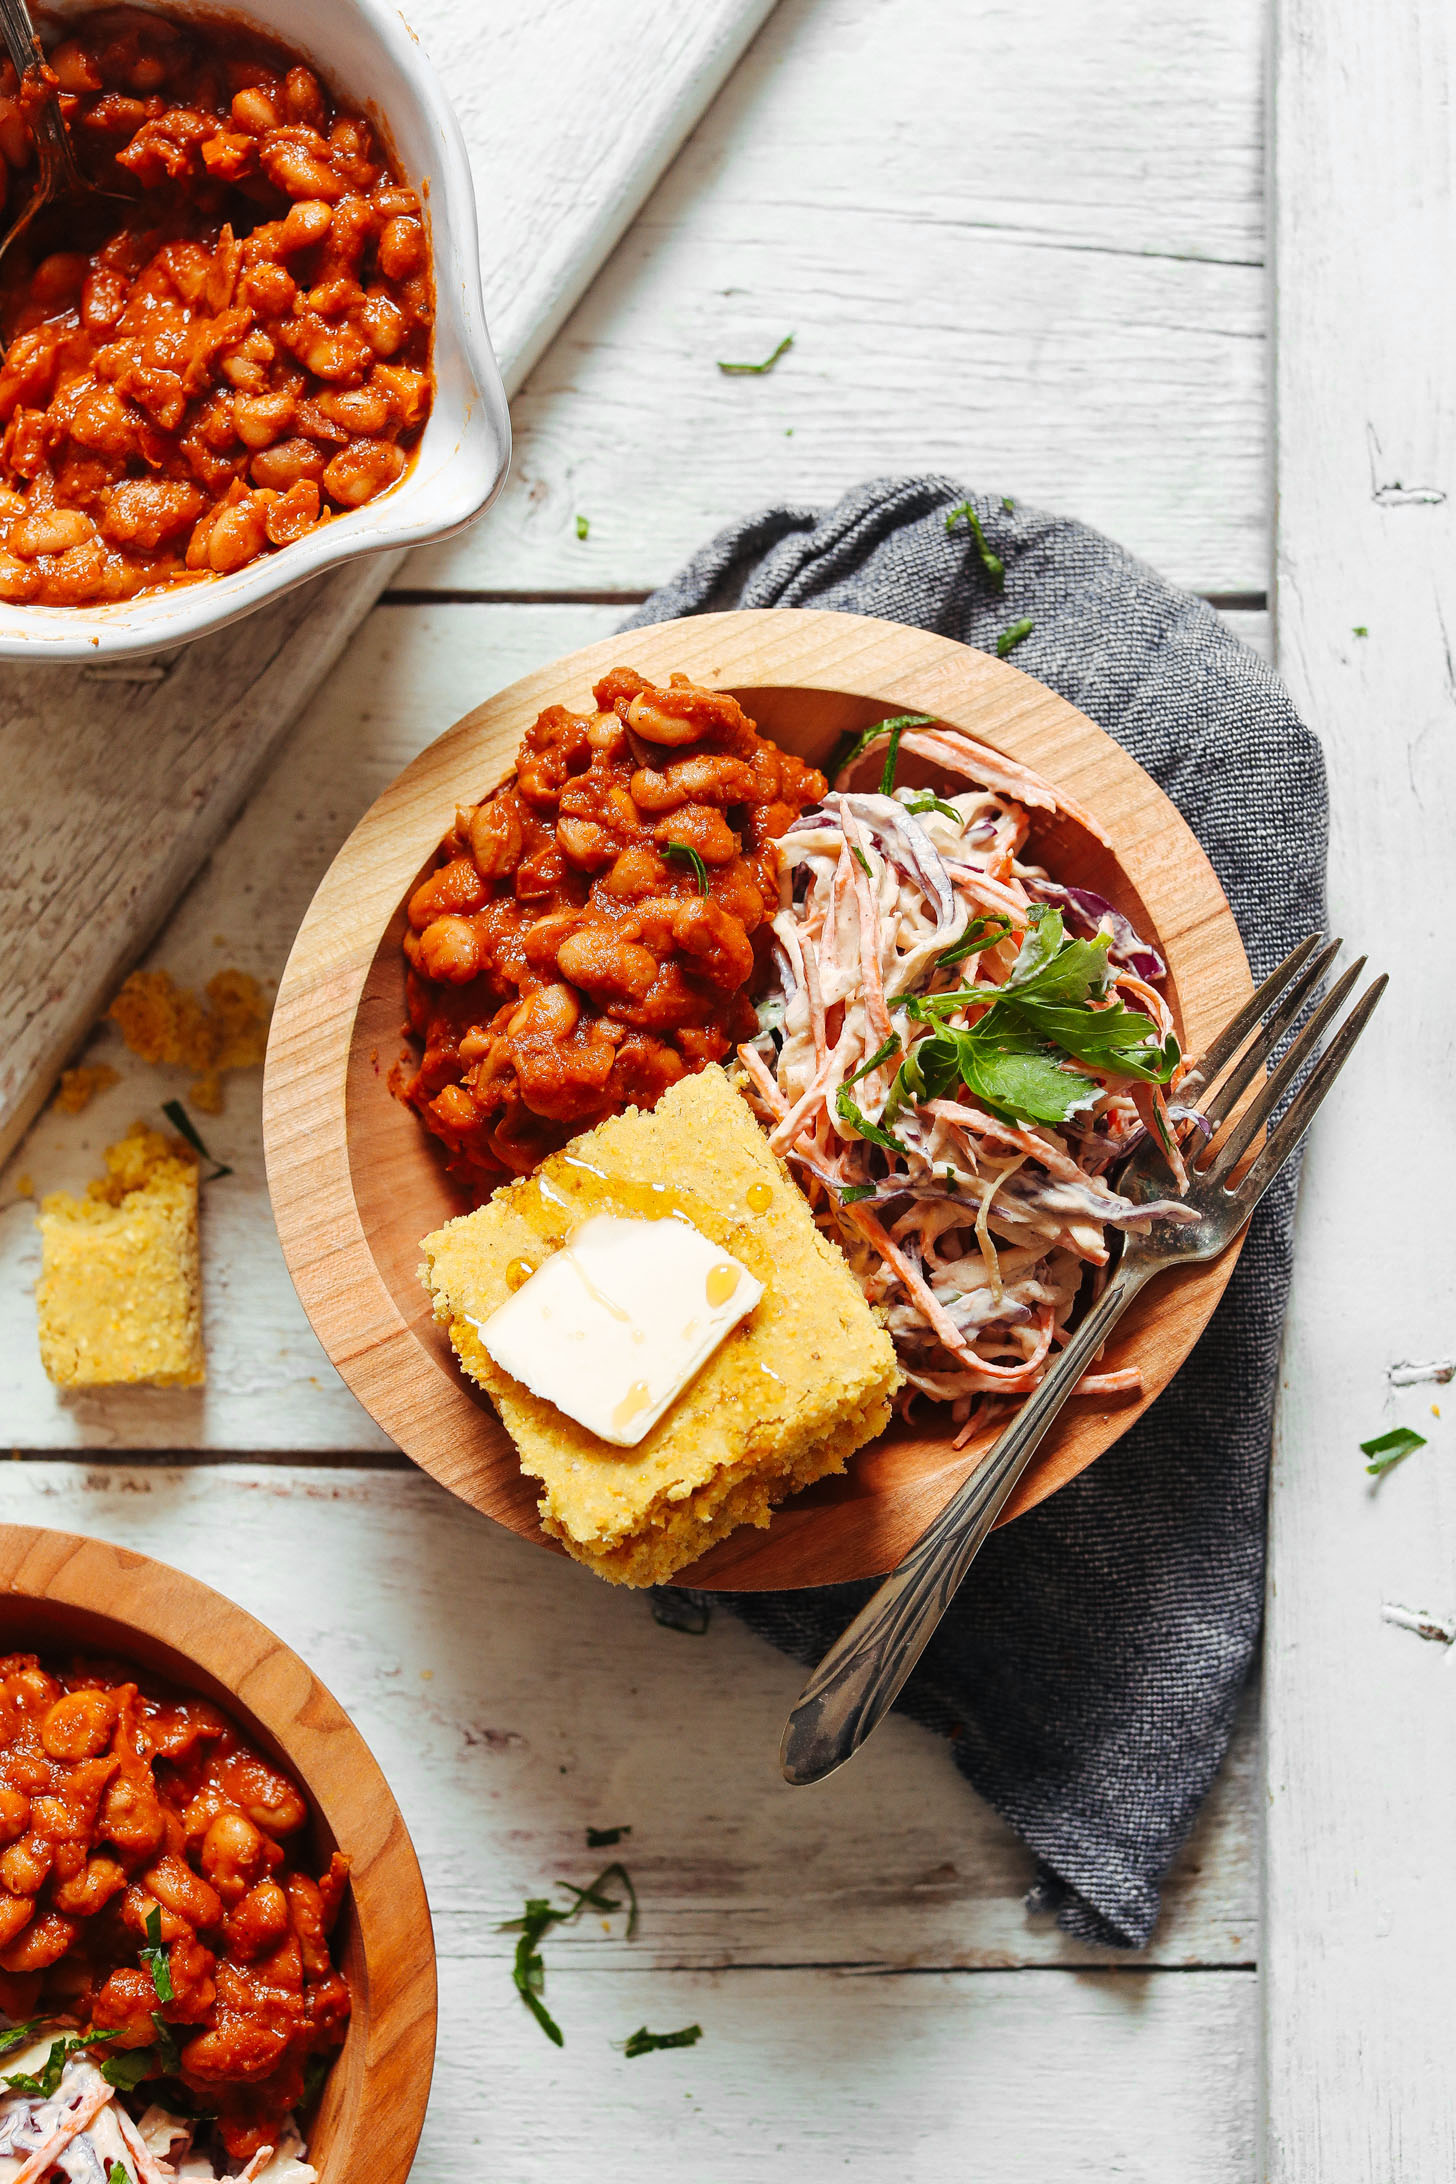 Close up shot of a bowl of Baked Beans, Vegan Coleslaw, and GF Cornbread with Vegan Butter